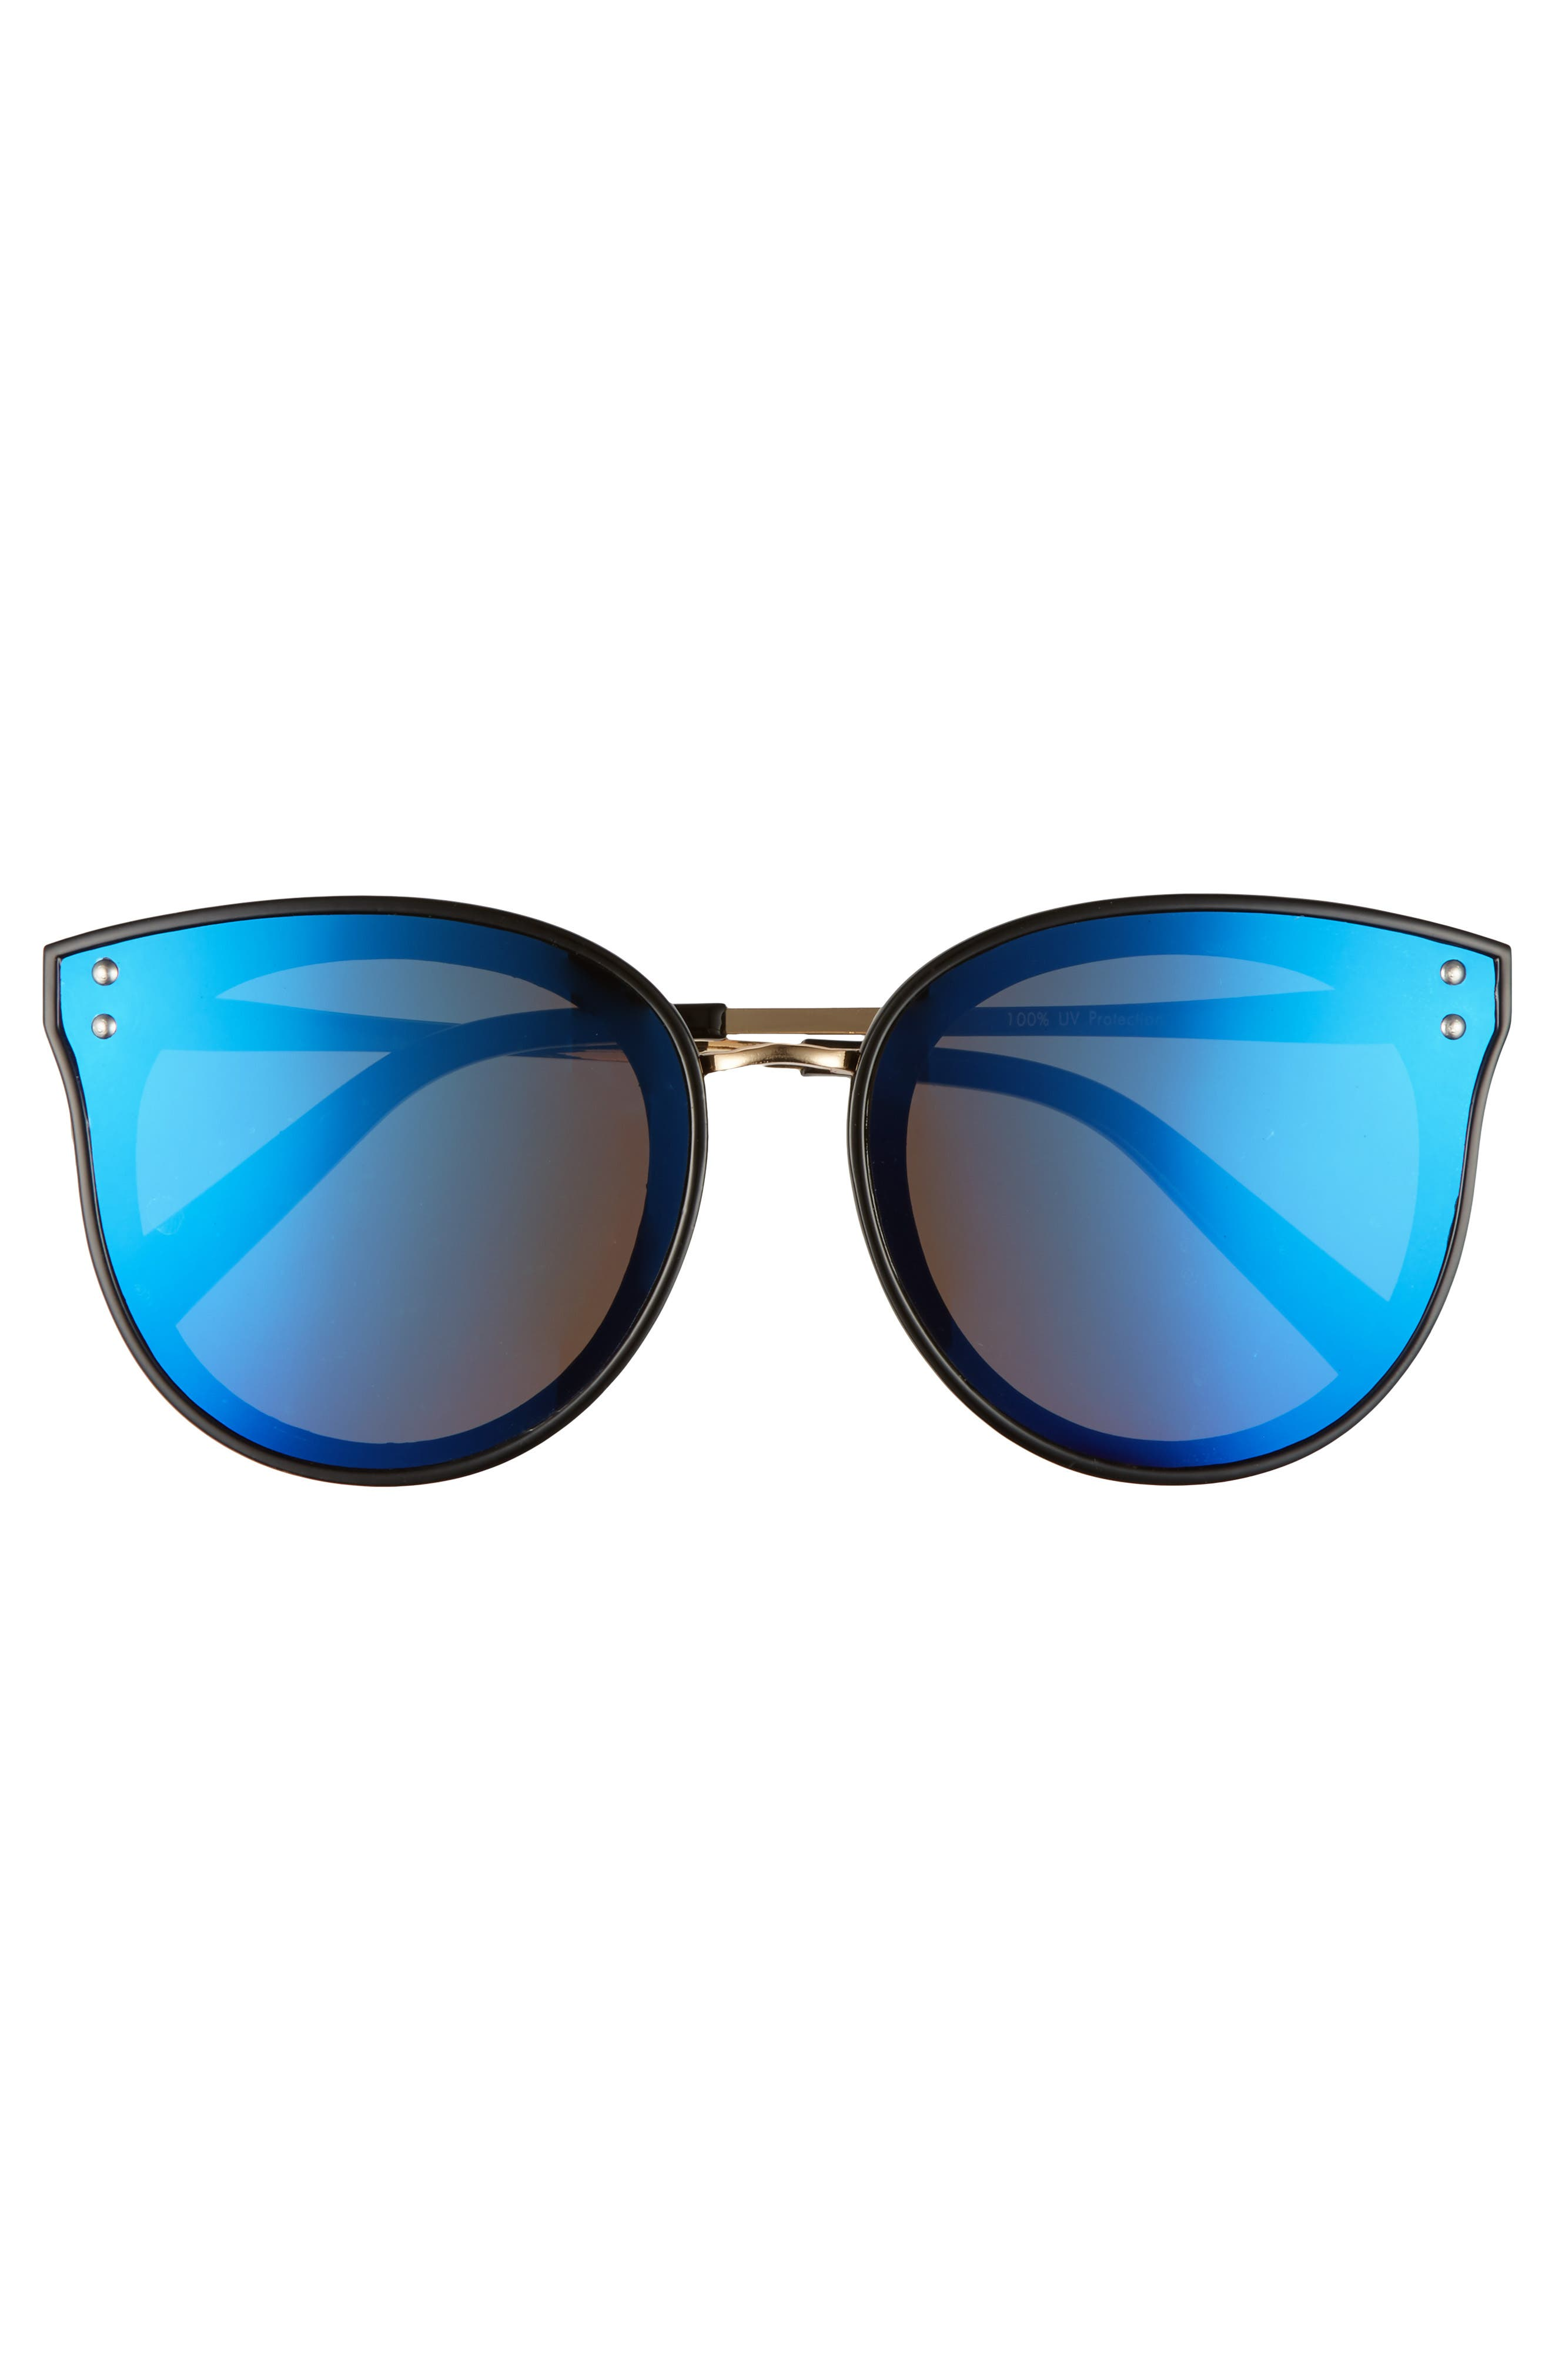 51mm Round Sunglasses,                             Alternate thumbnail 3, color,                             001